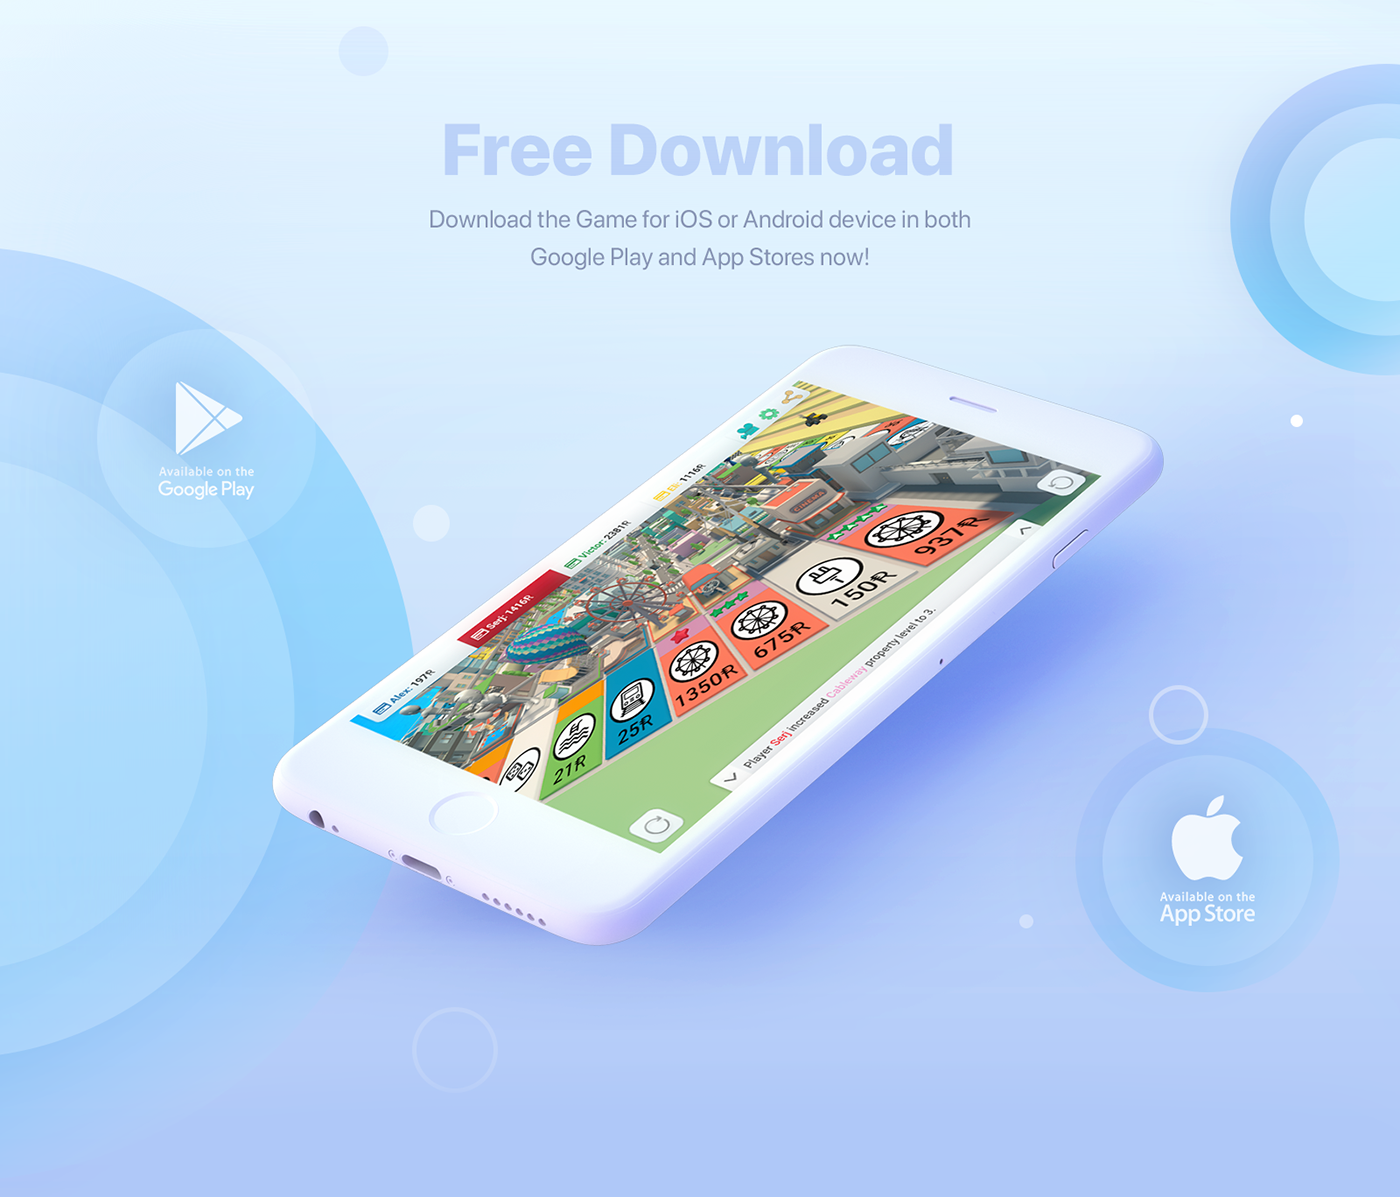 Free 3D Mobile Game - Rentomania on Behance